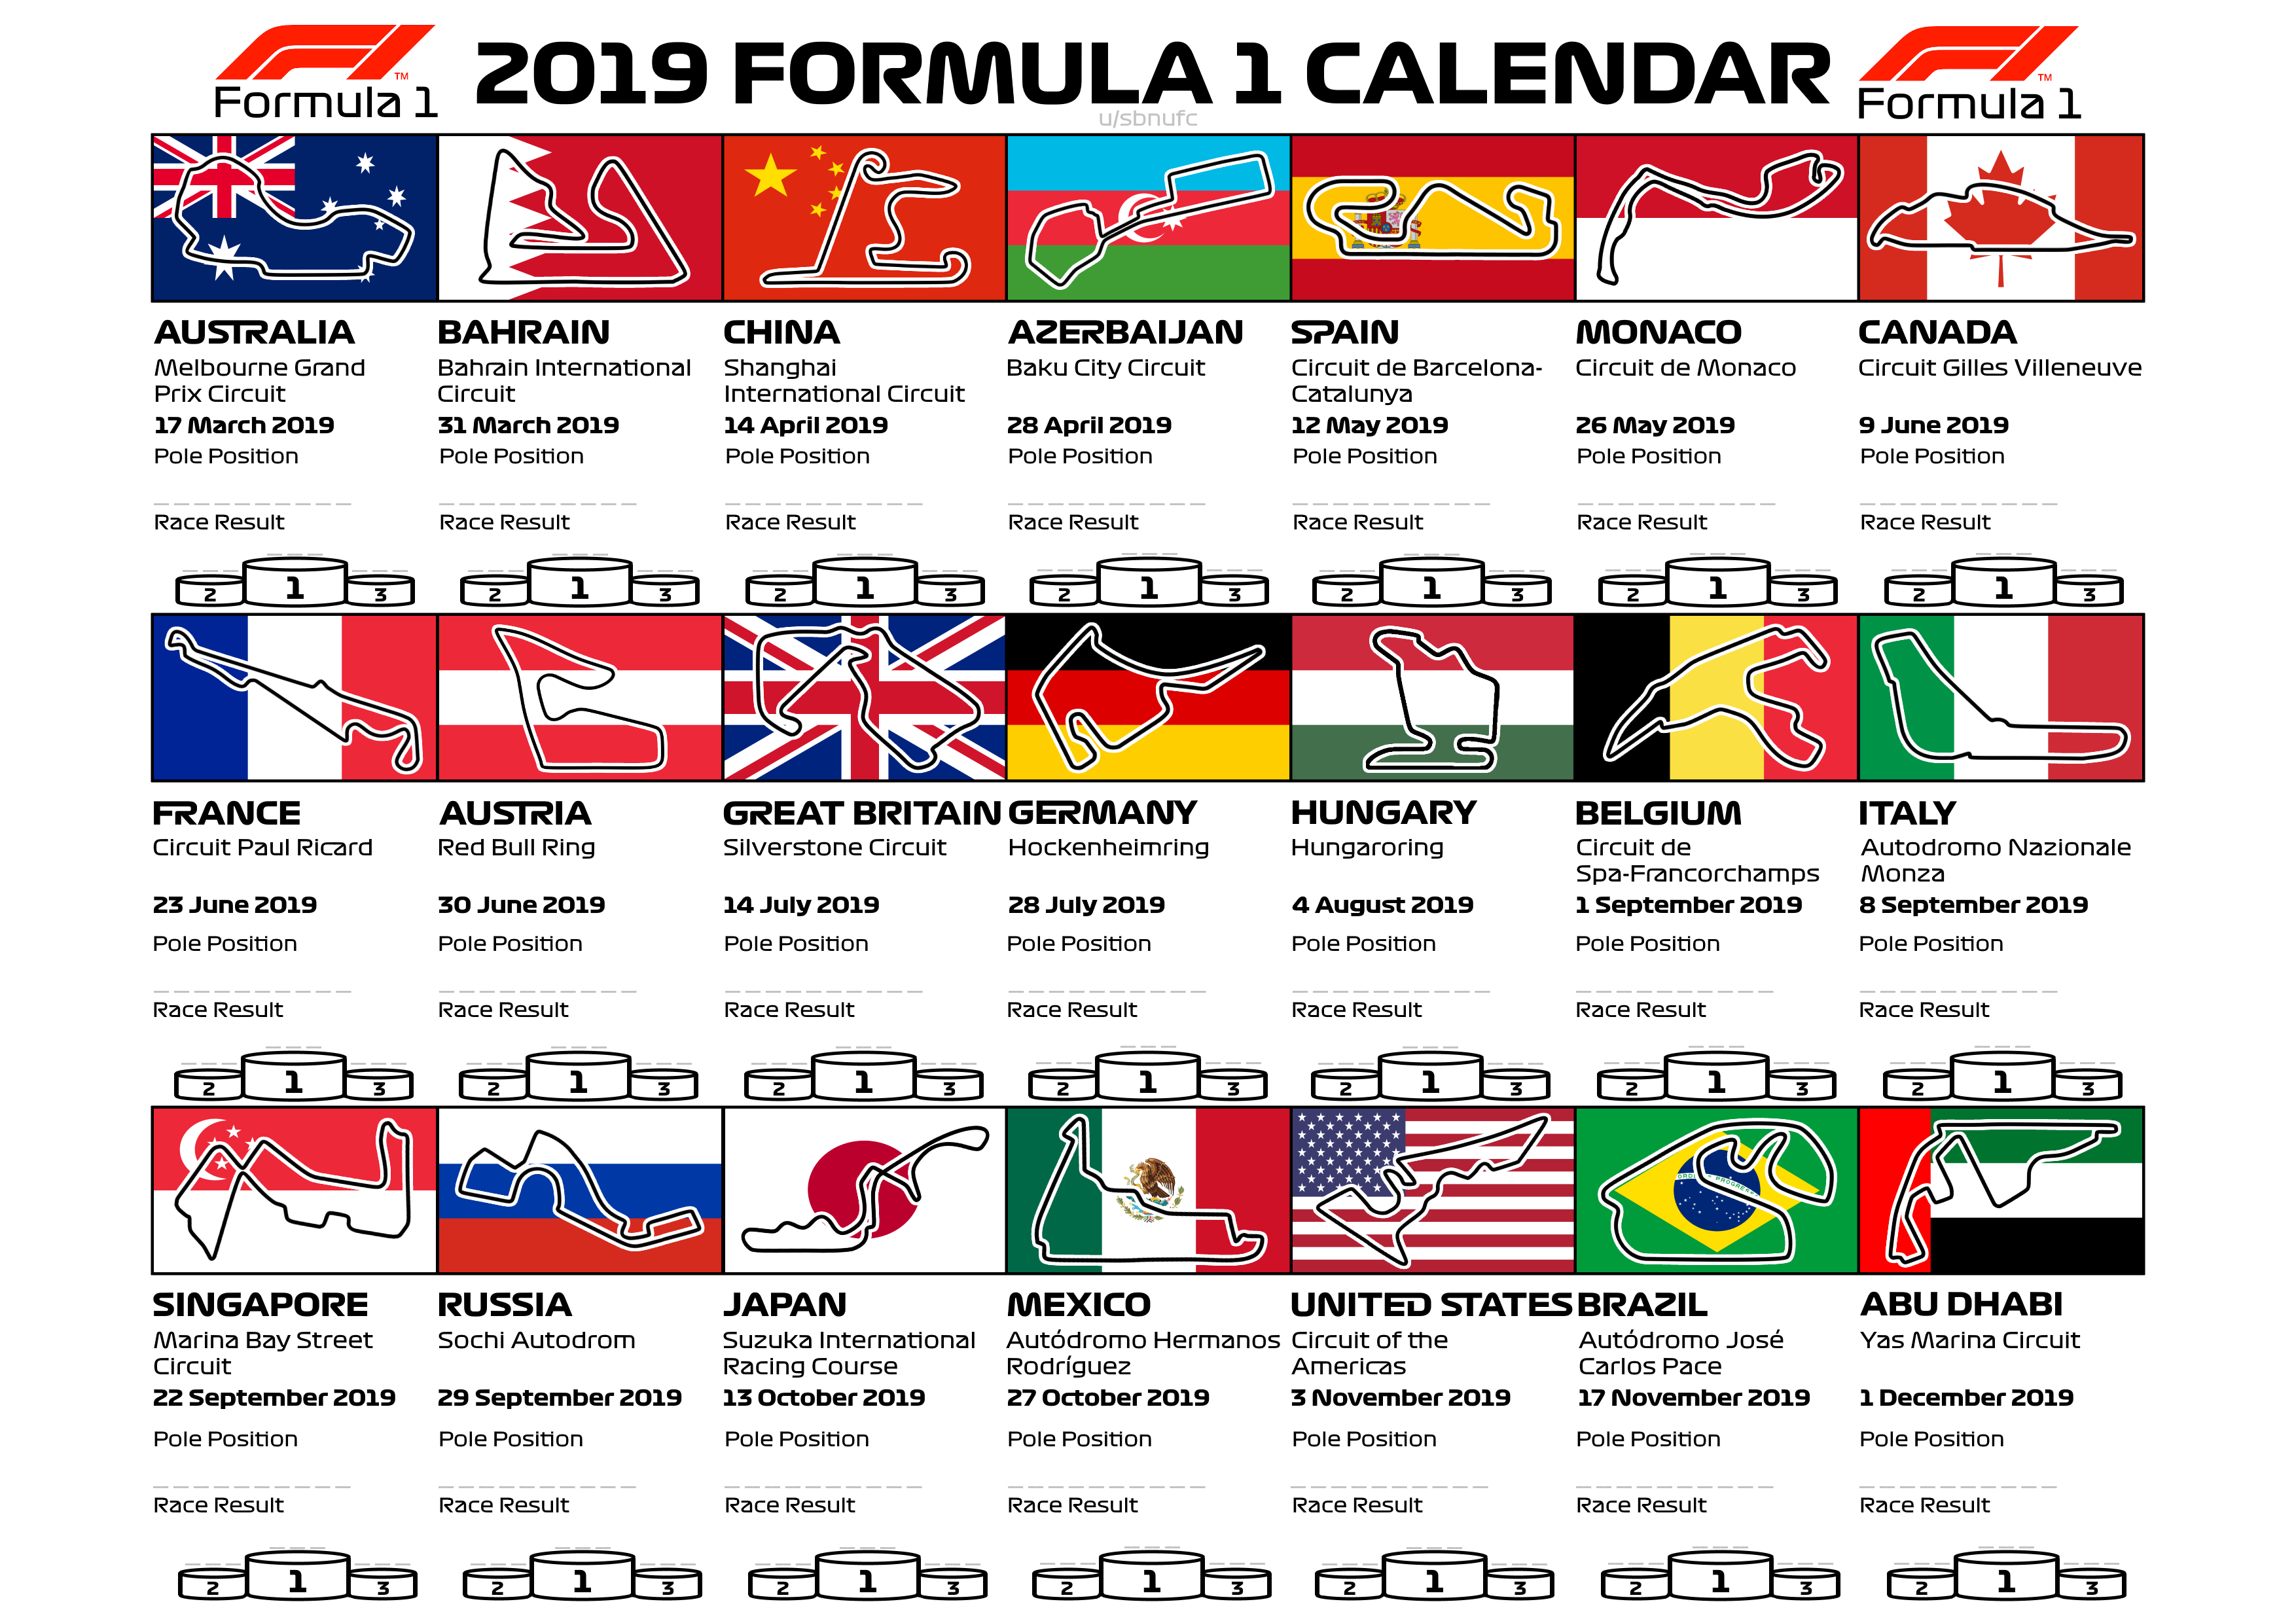 After Making A Calendar For The 2017 And 2018 Seasons, I Had Formula 1 Calendar 2019 Tickets